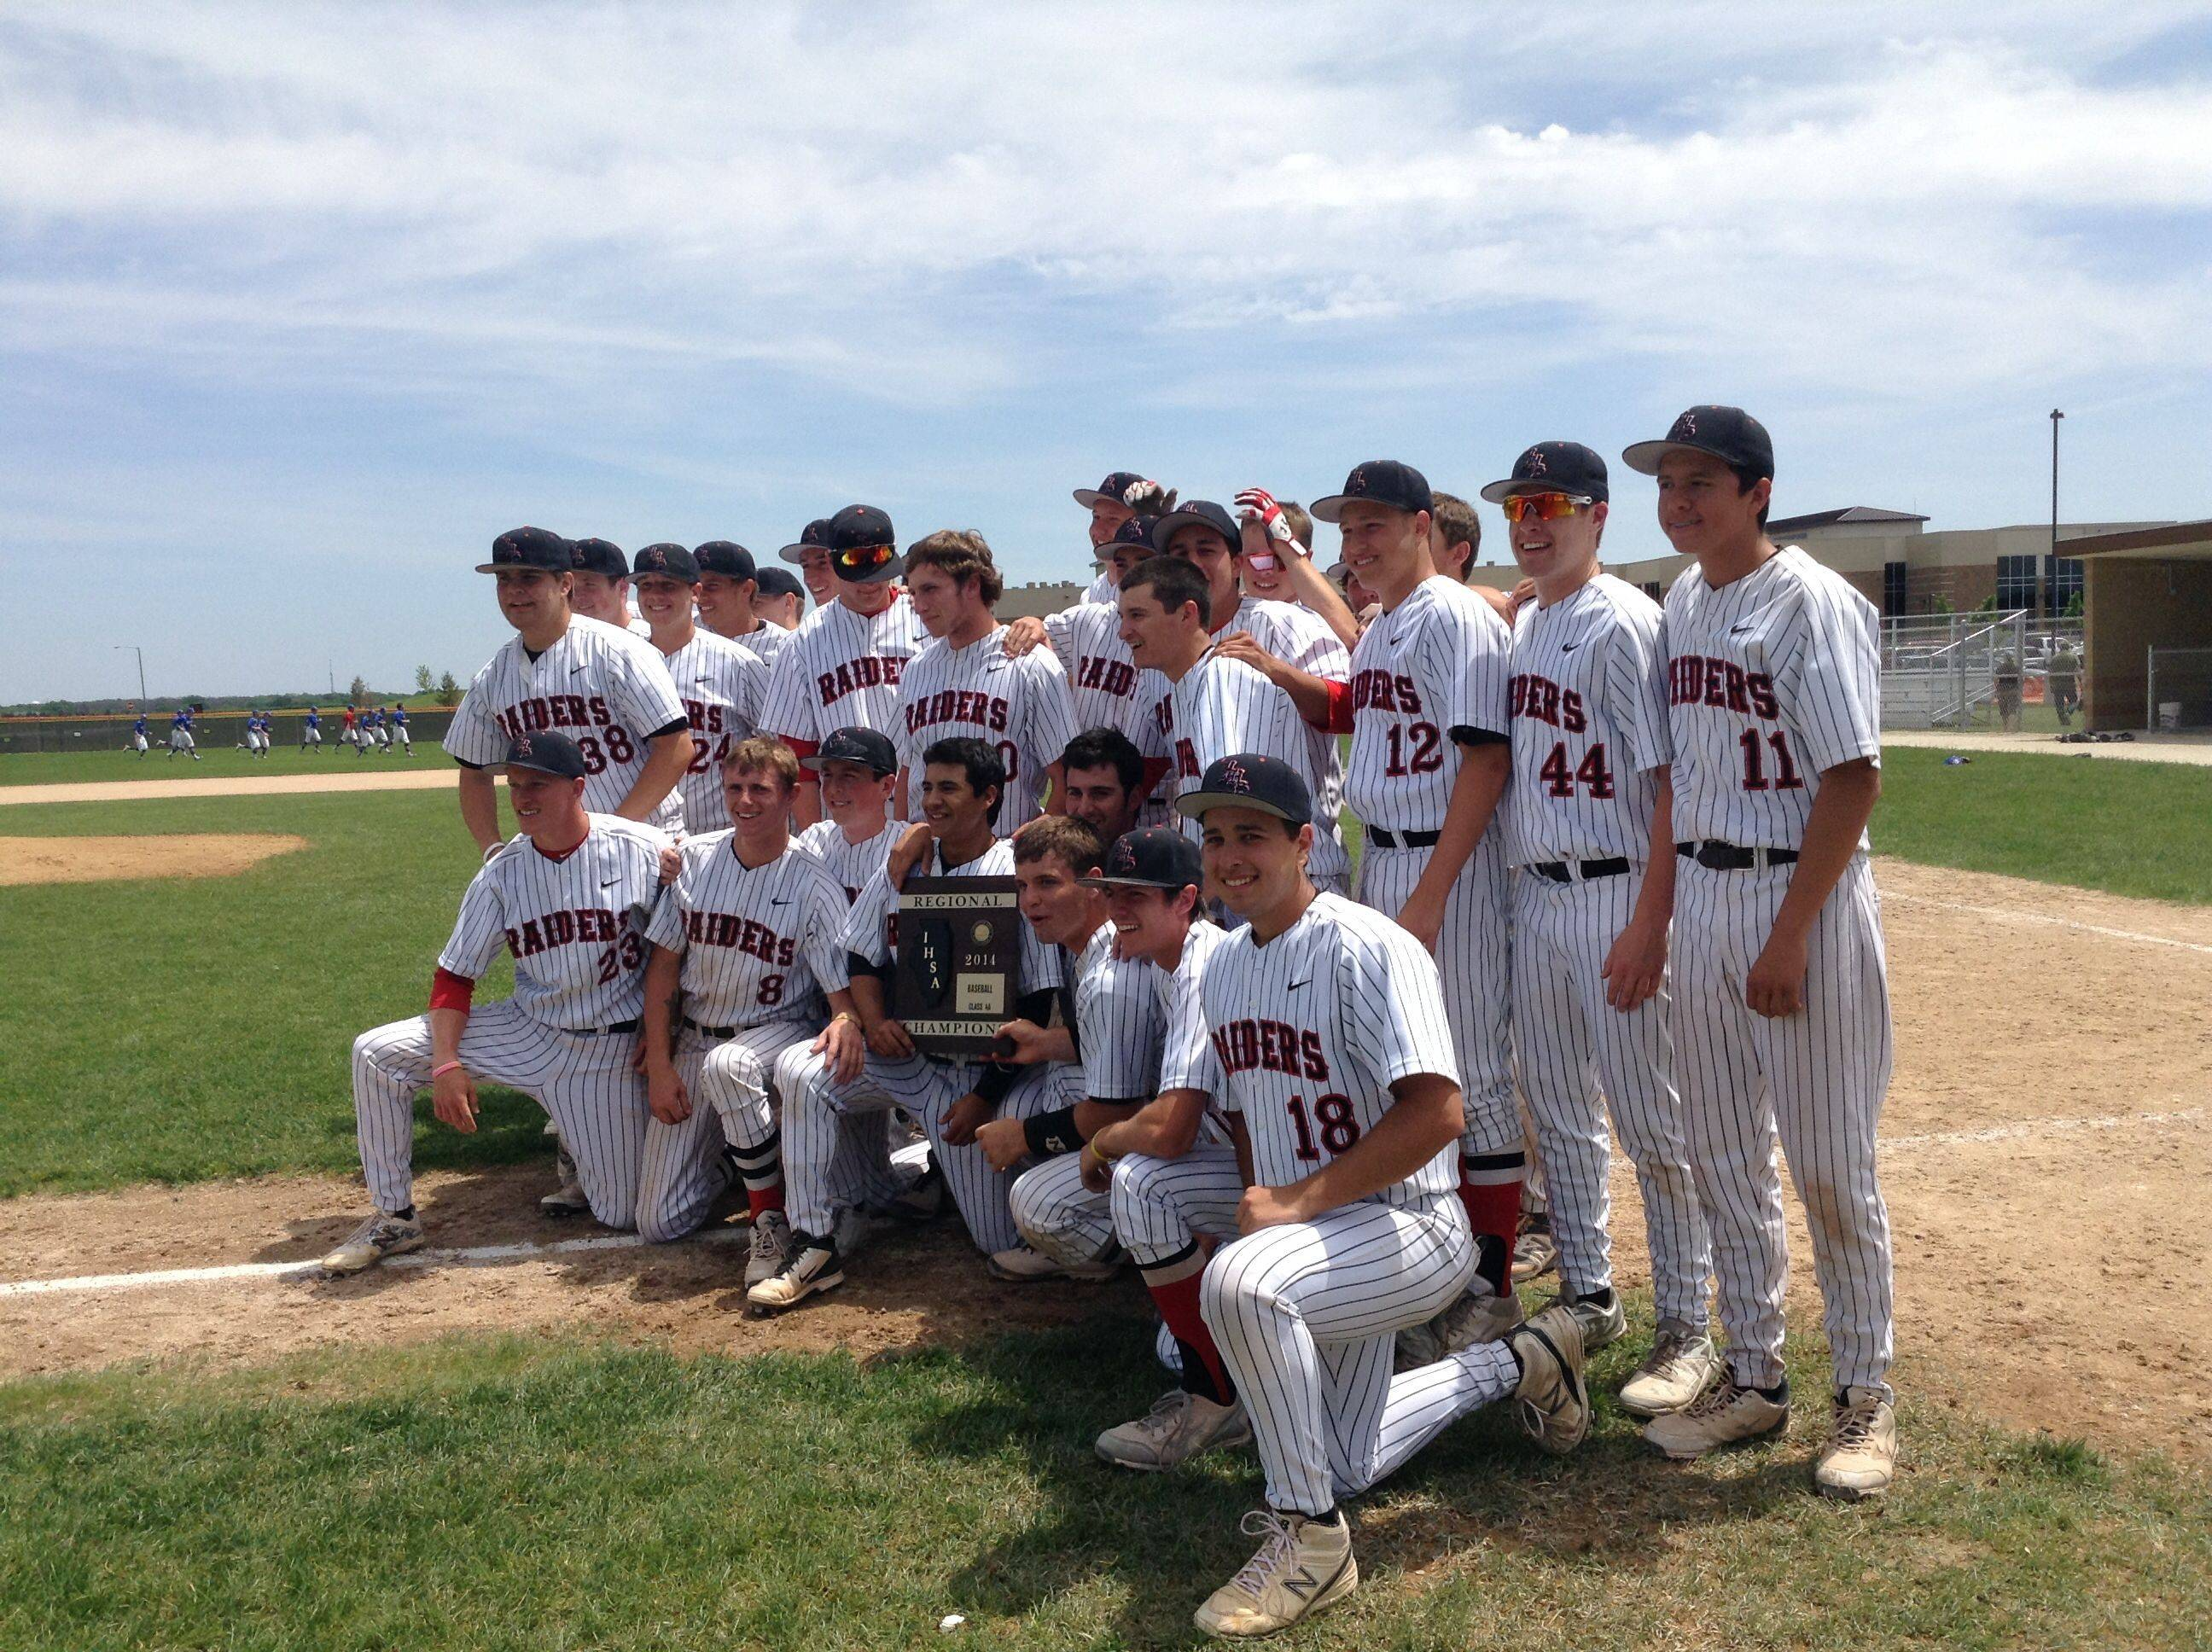 The Huntley baseball team displays the regional championship plaque it won at DeKalb on Saturday.